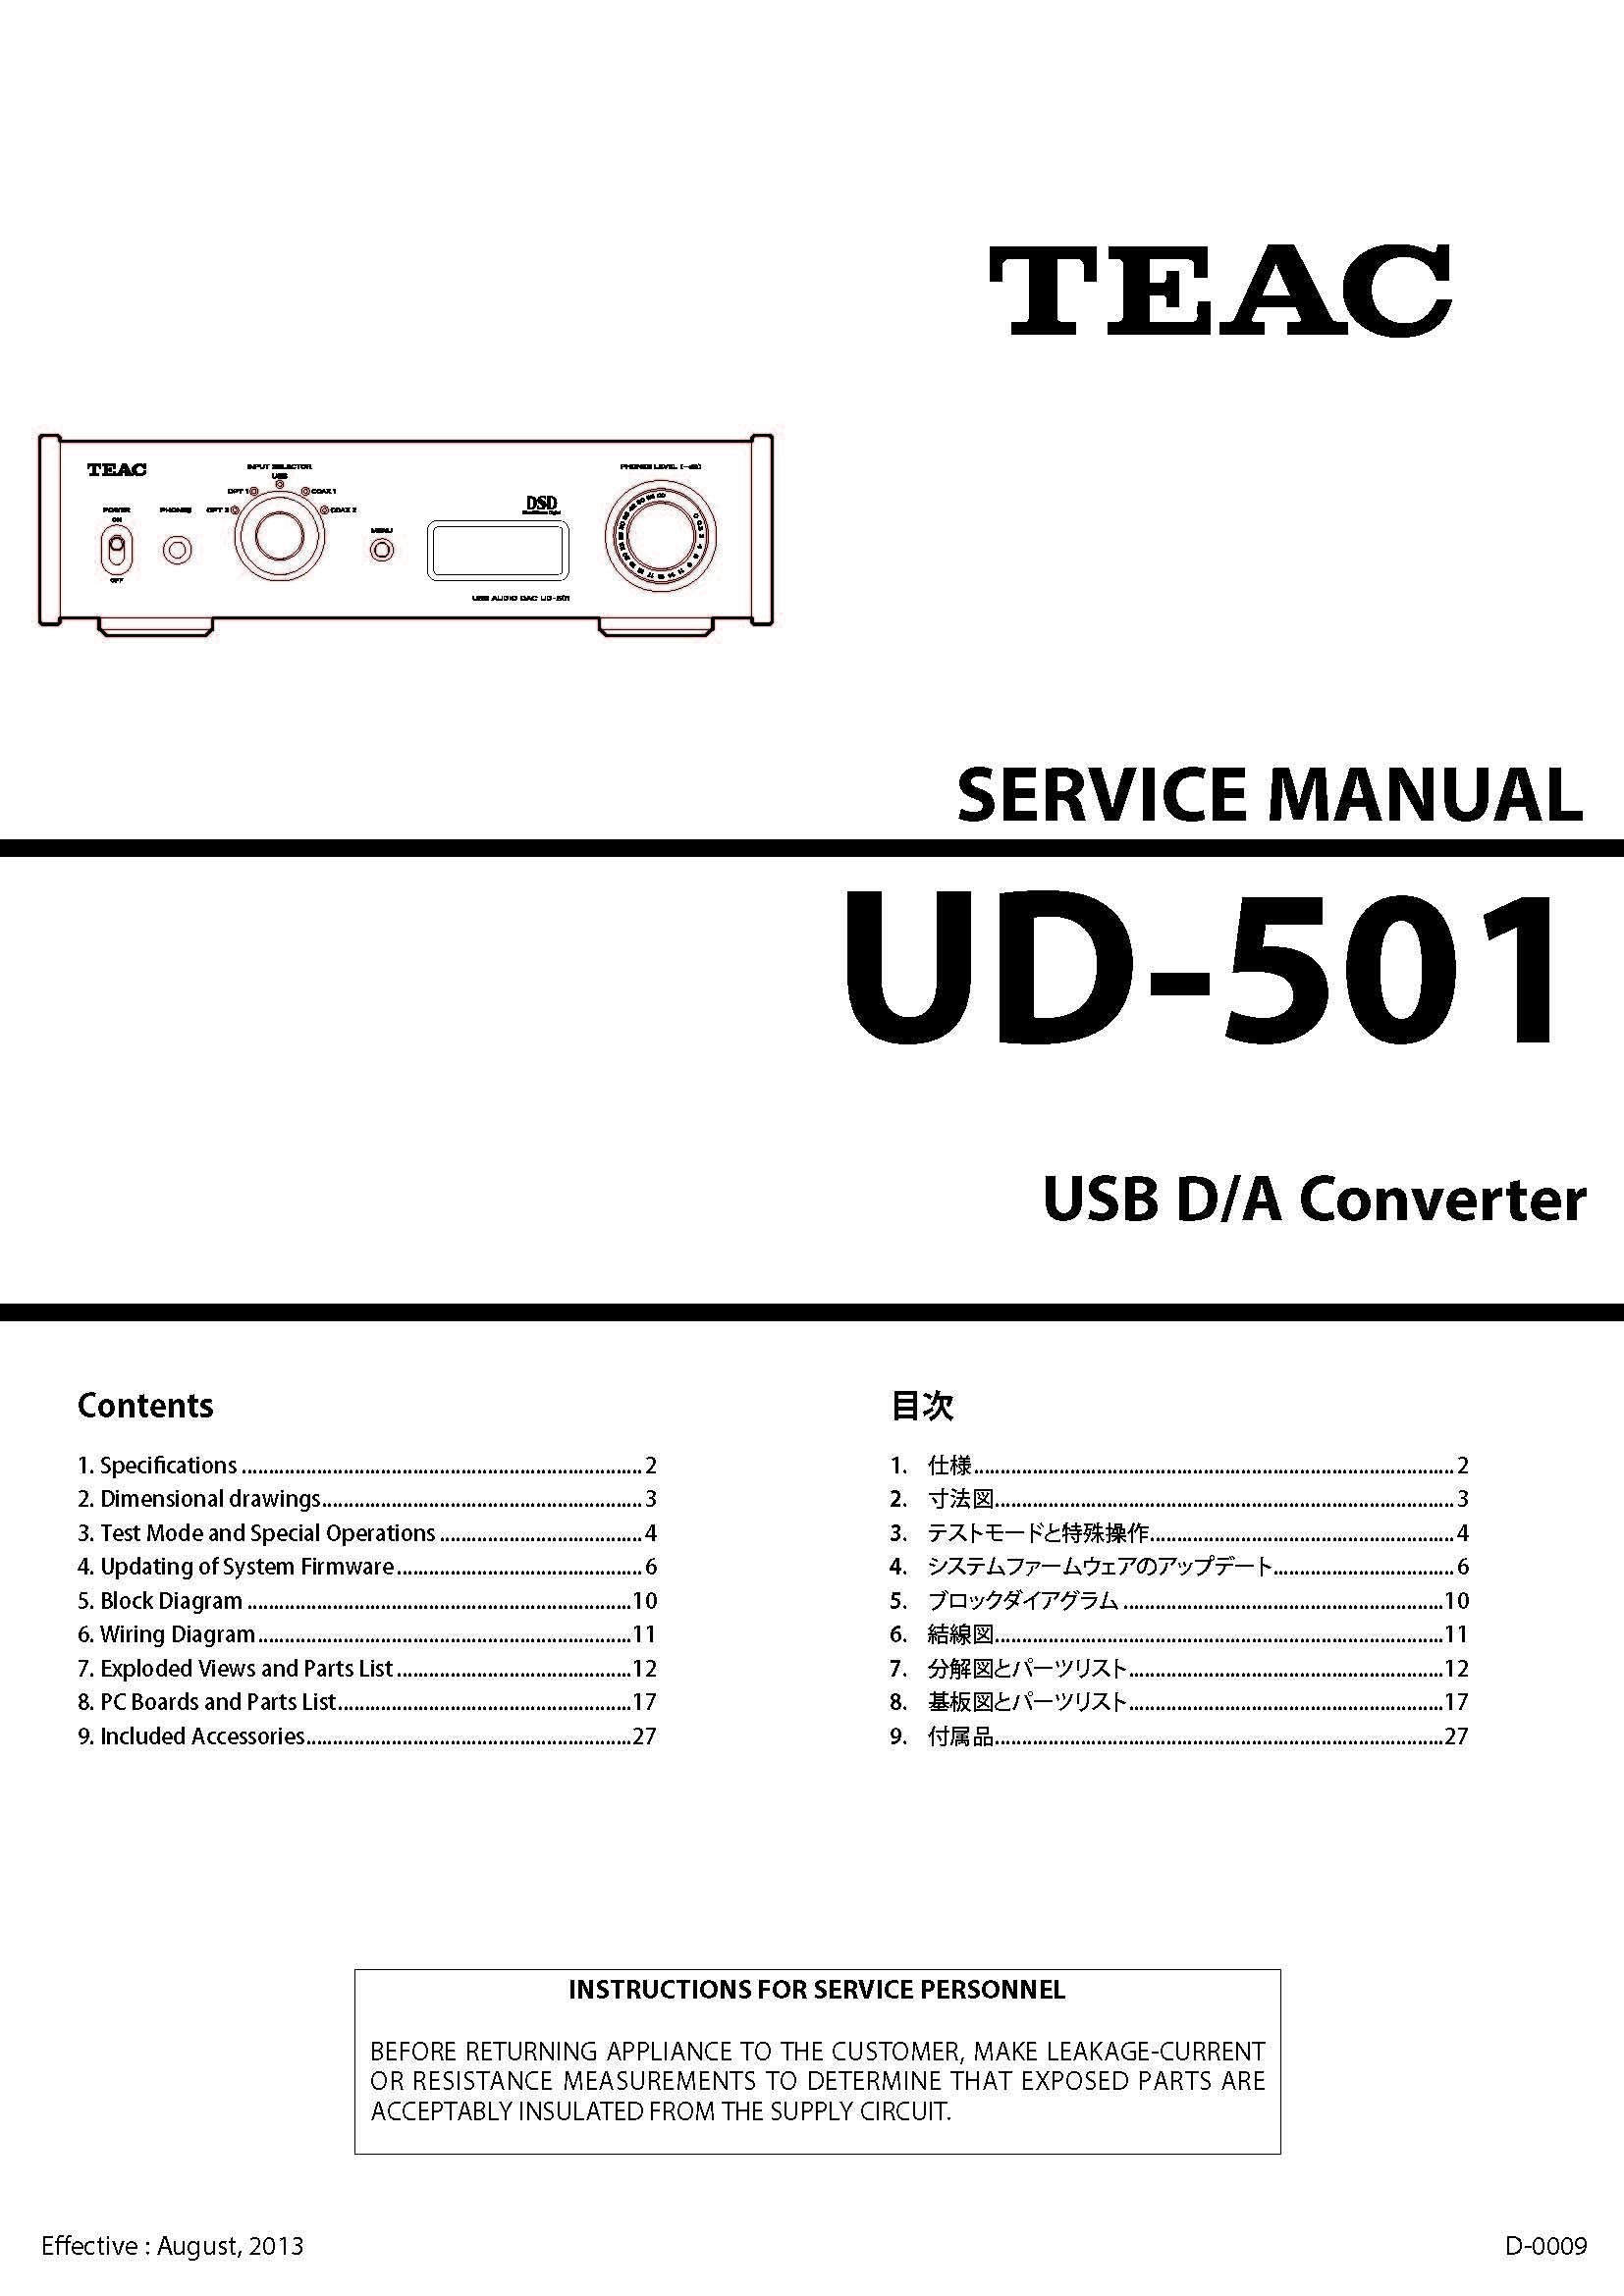 Ud Wiring Schematic Another Diagrams Block Diagram Ud501 501 Service Manual Teac Amazon Com Books Rh Symbols Electrical